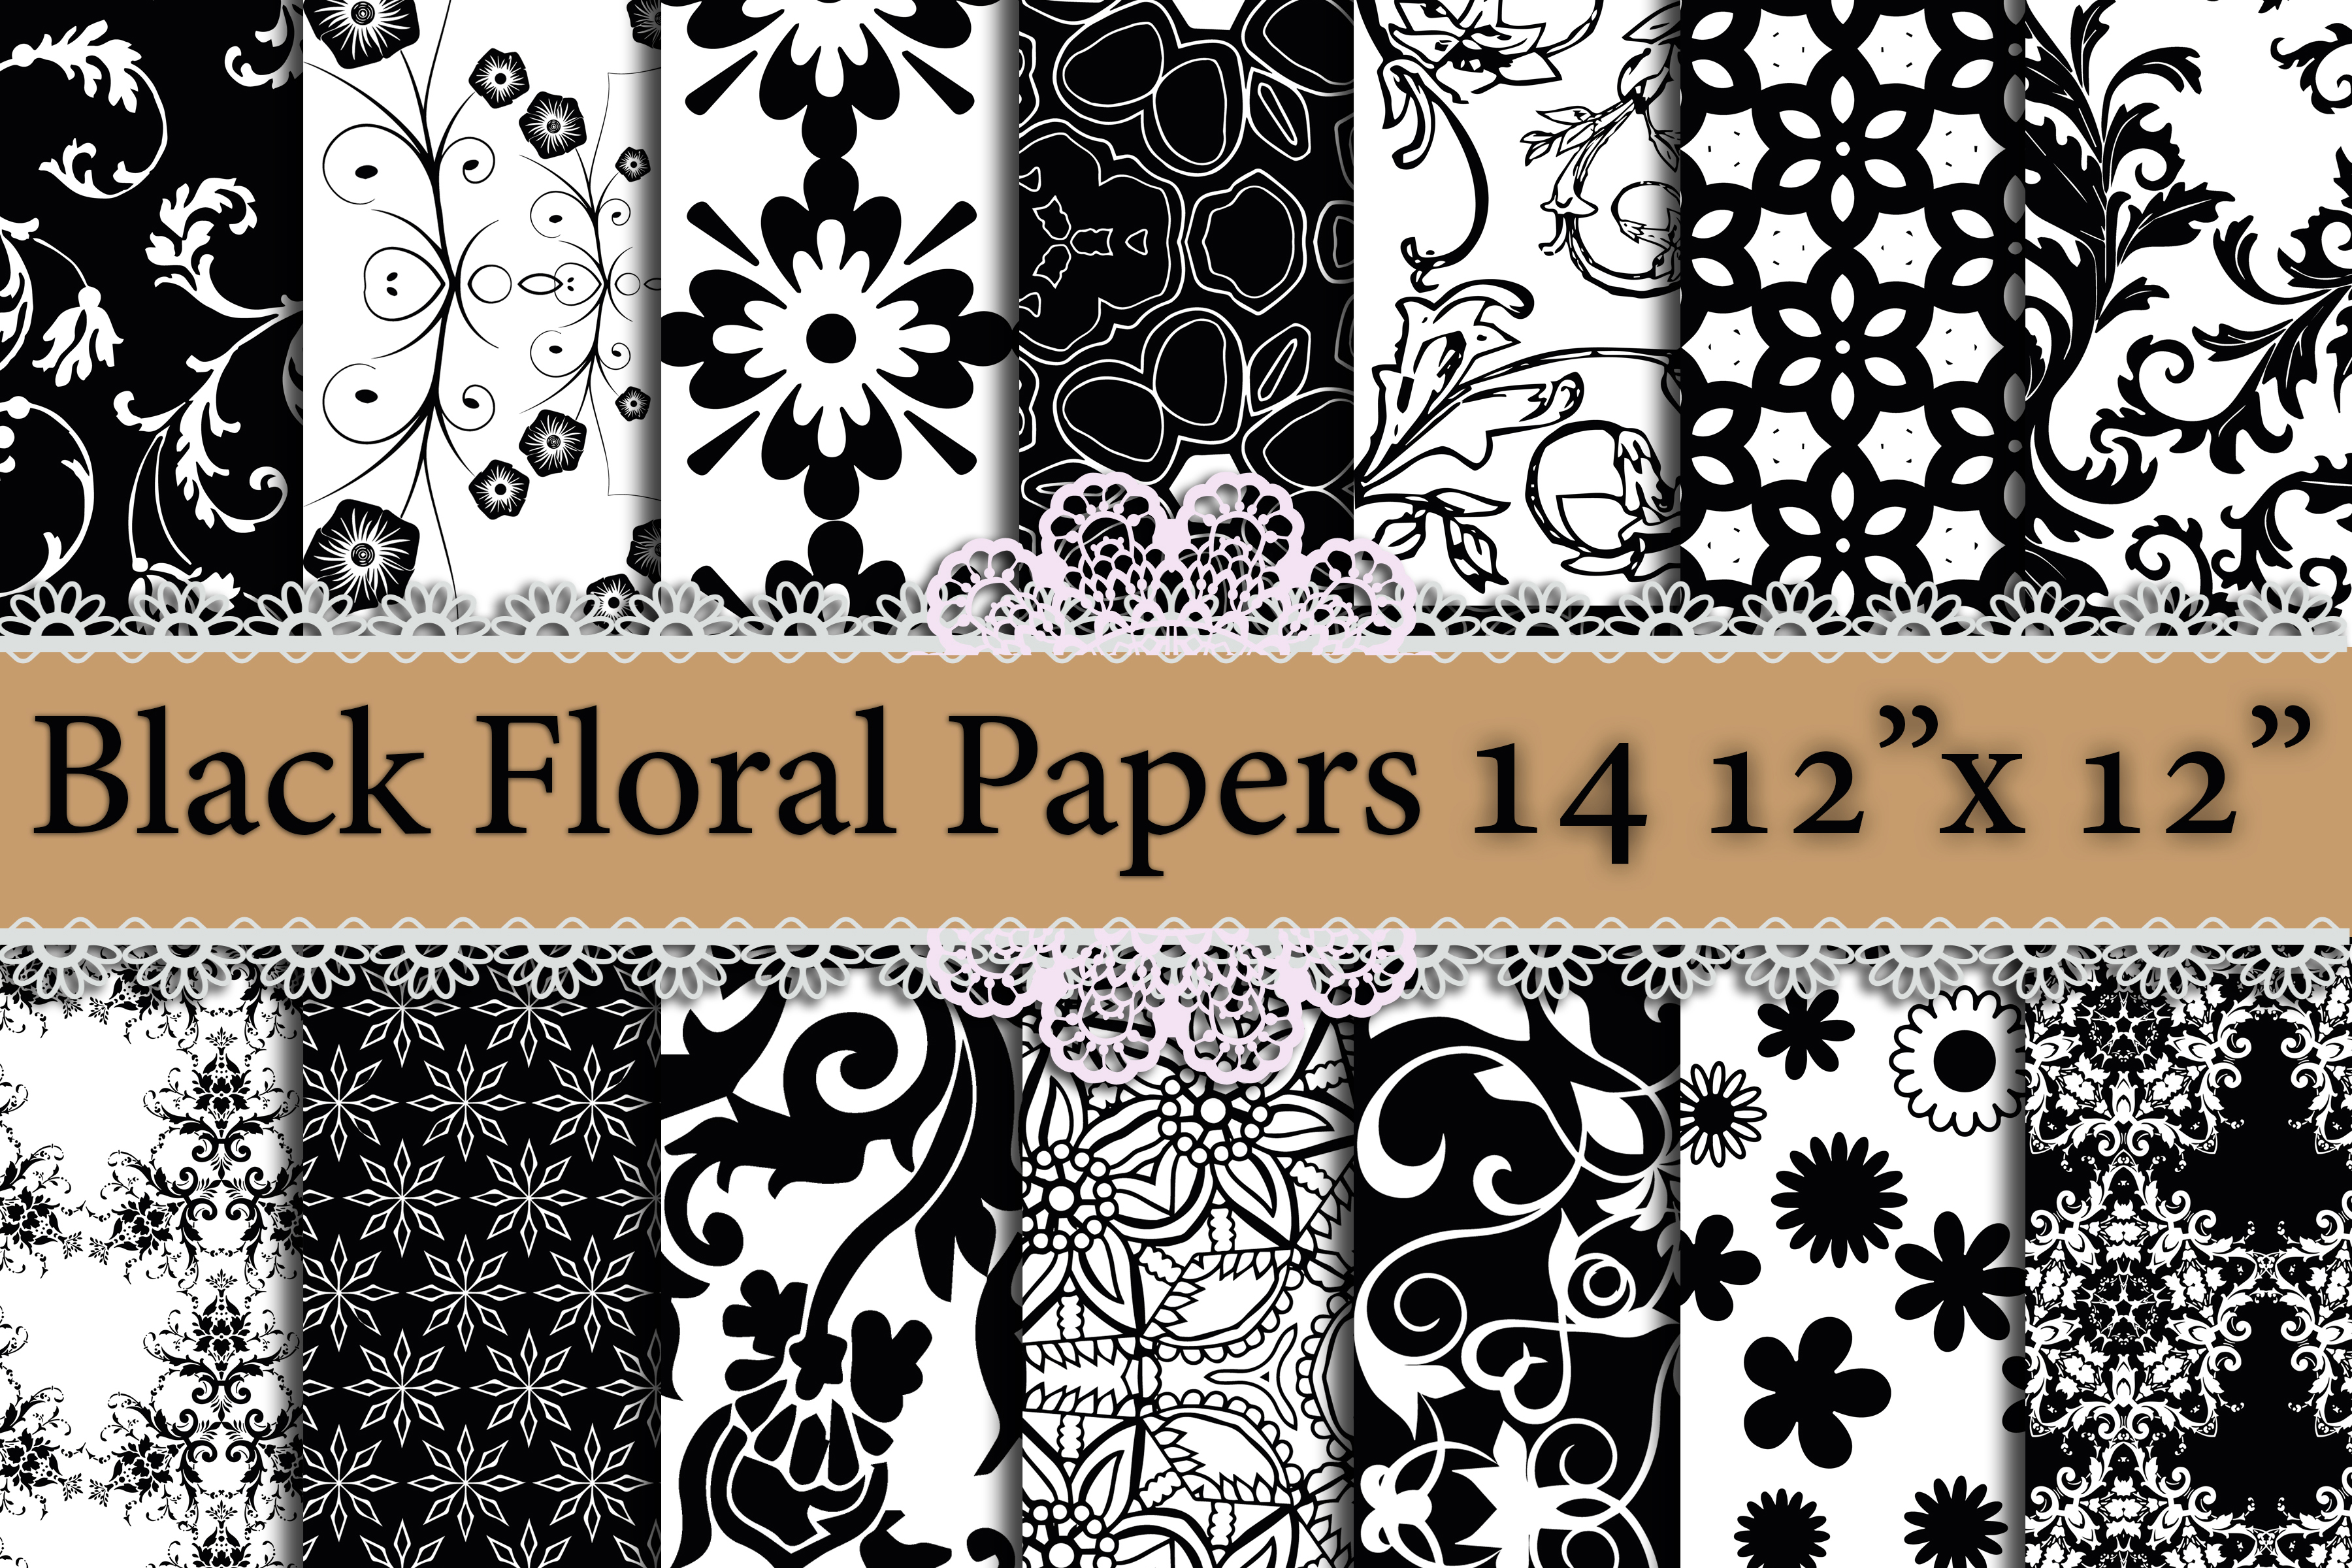 Black Floral Digital Papers,FLORAL DIGITAL PAPER,Floral Background Graphic By prettydesignstudio